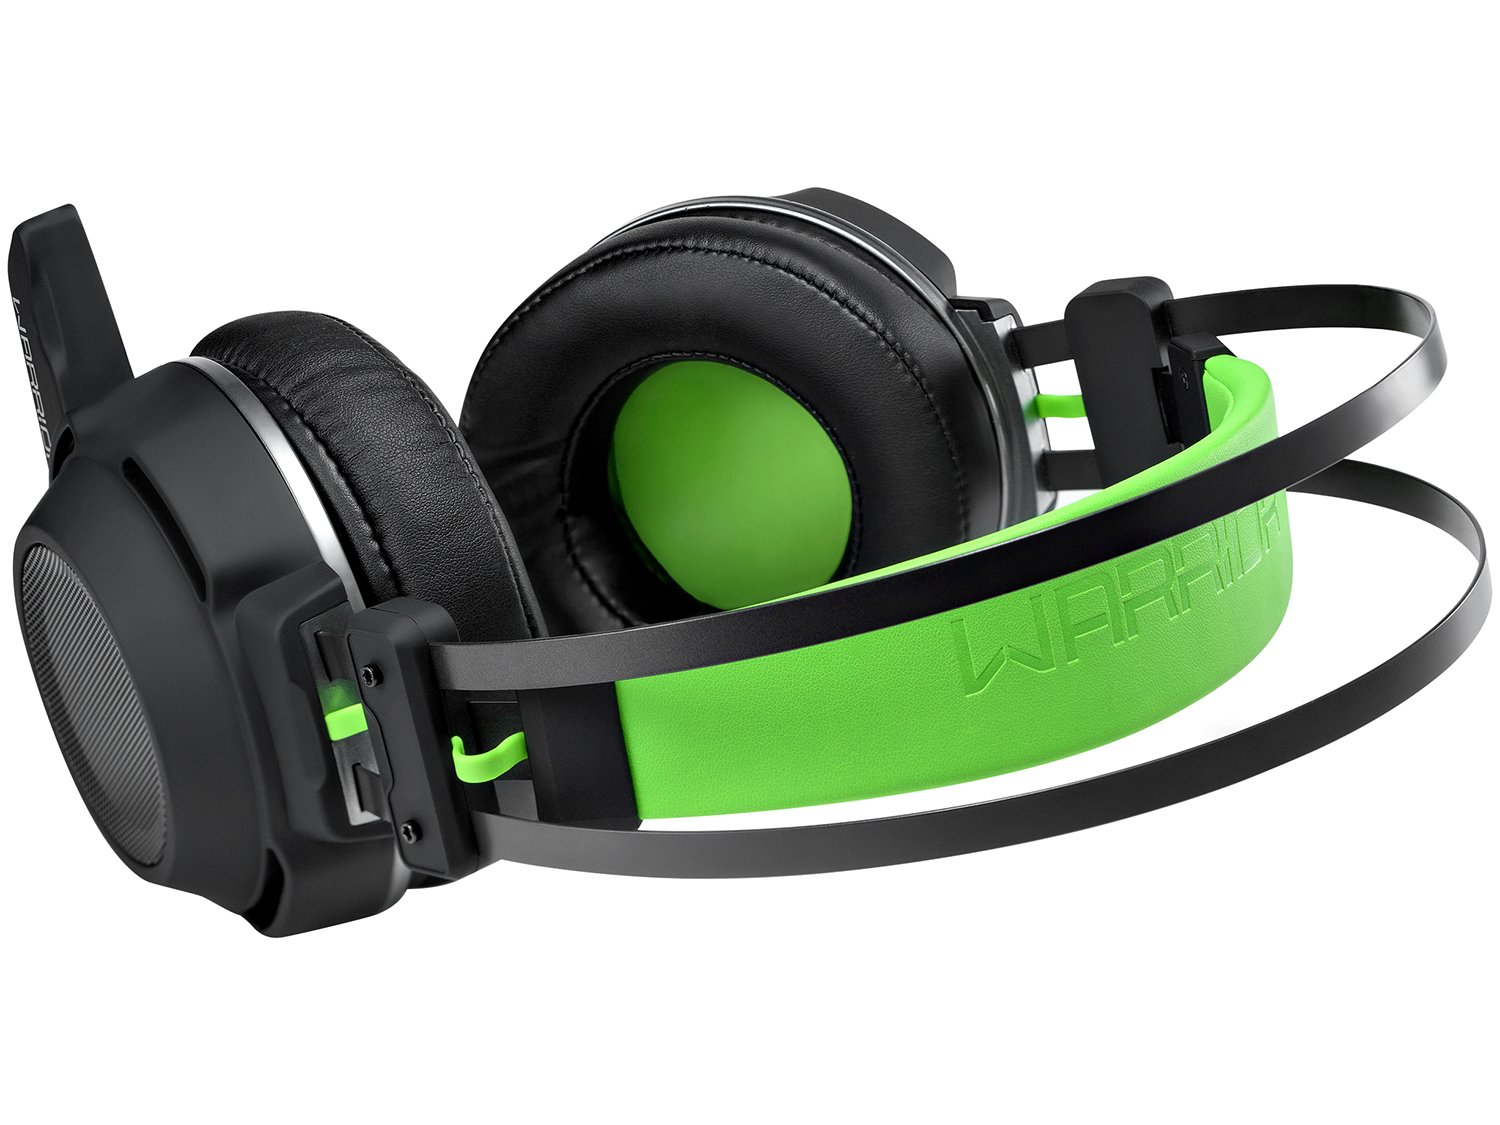 Foto 4 - Headset Gamer para PC Warrior - PH225 Iluminado com LED